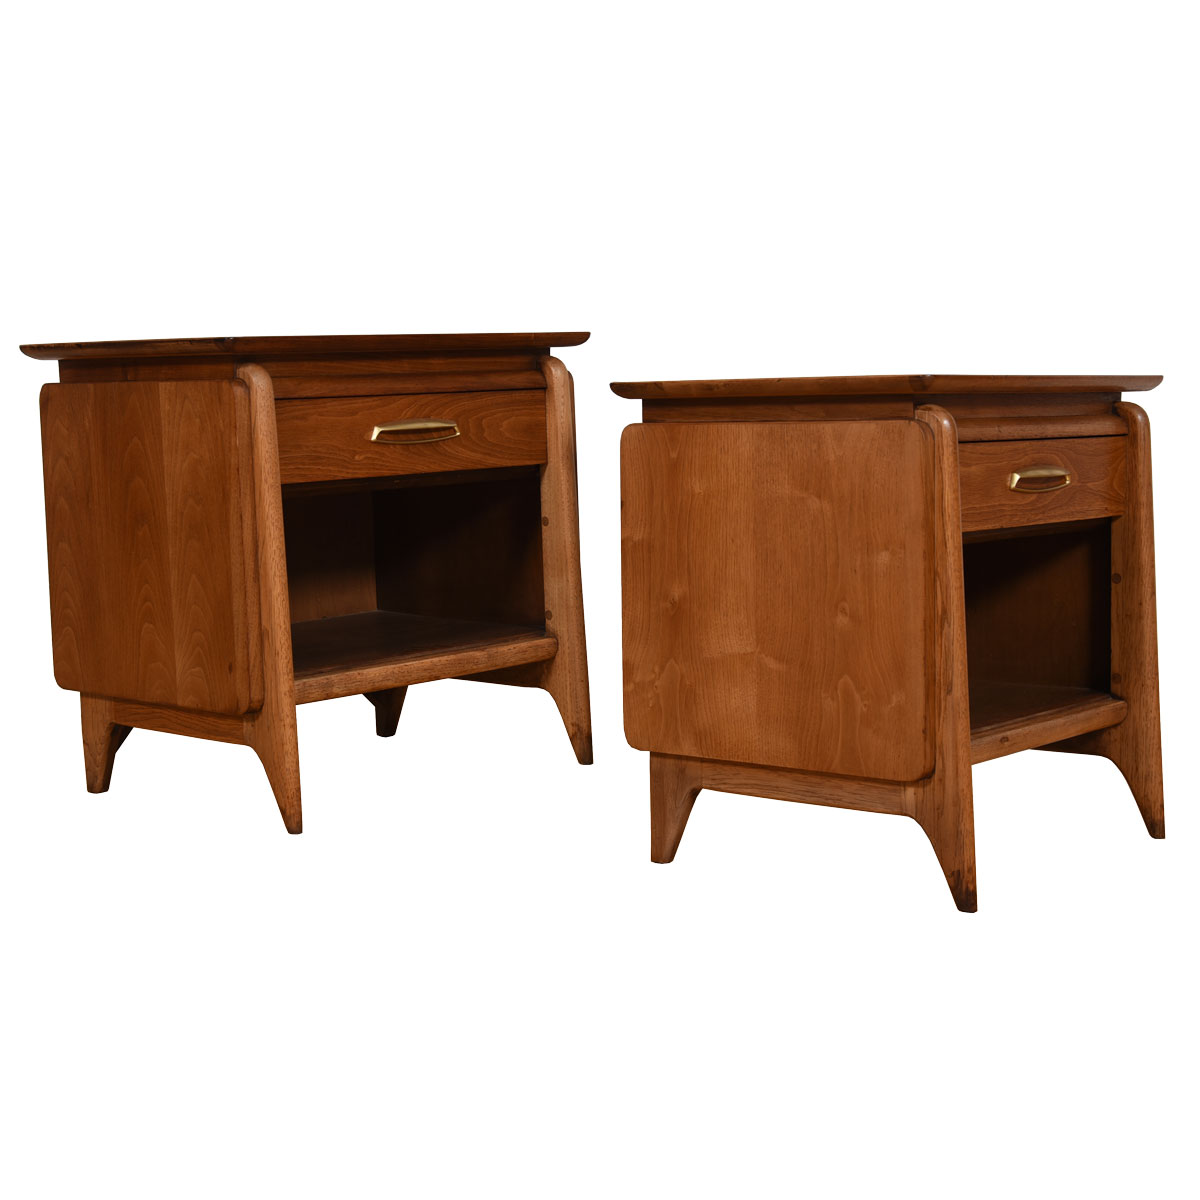 Pair 1950's Sculpted Mid-Century Modern Nightstands / End Tables